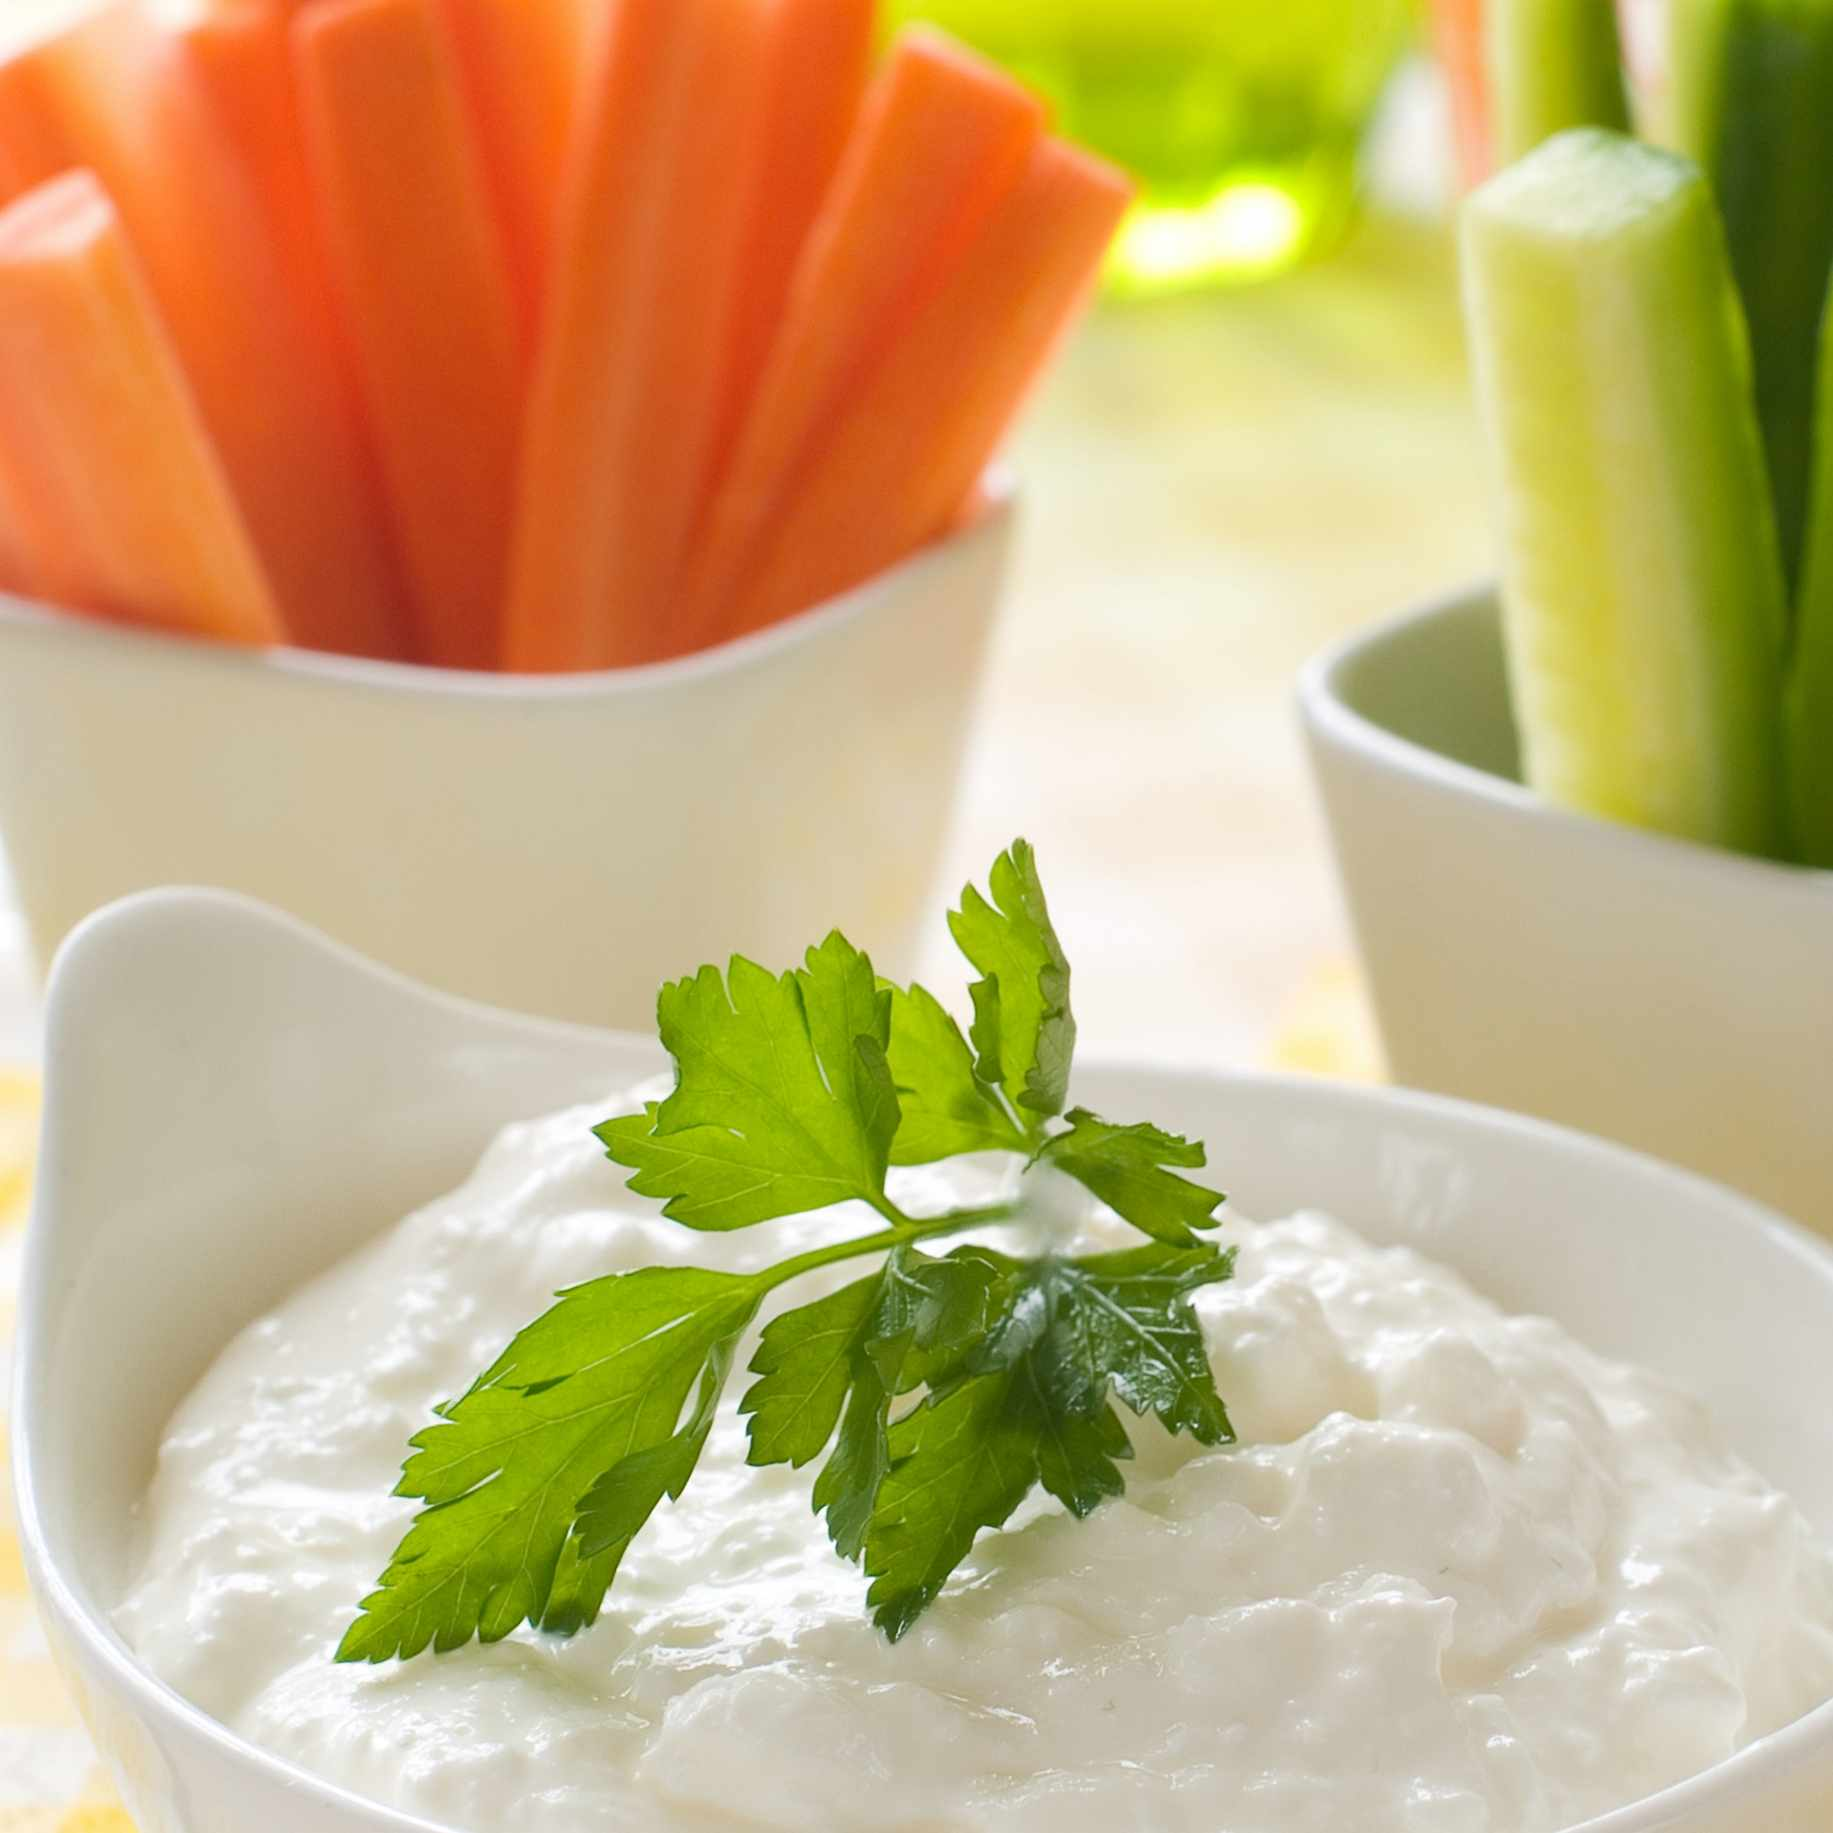 a healthy vegetable snack of carrots and cucumbers with a bowl of dressing dip